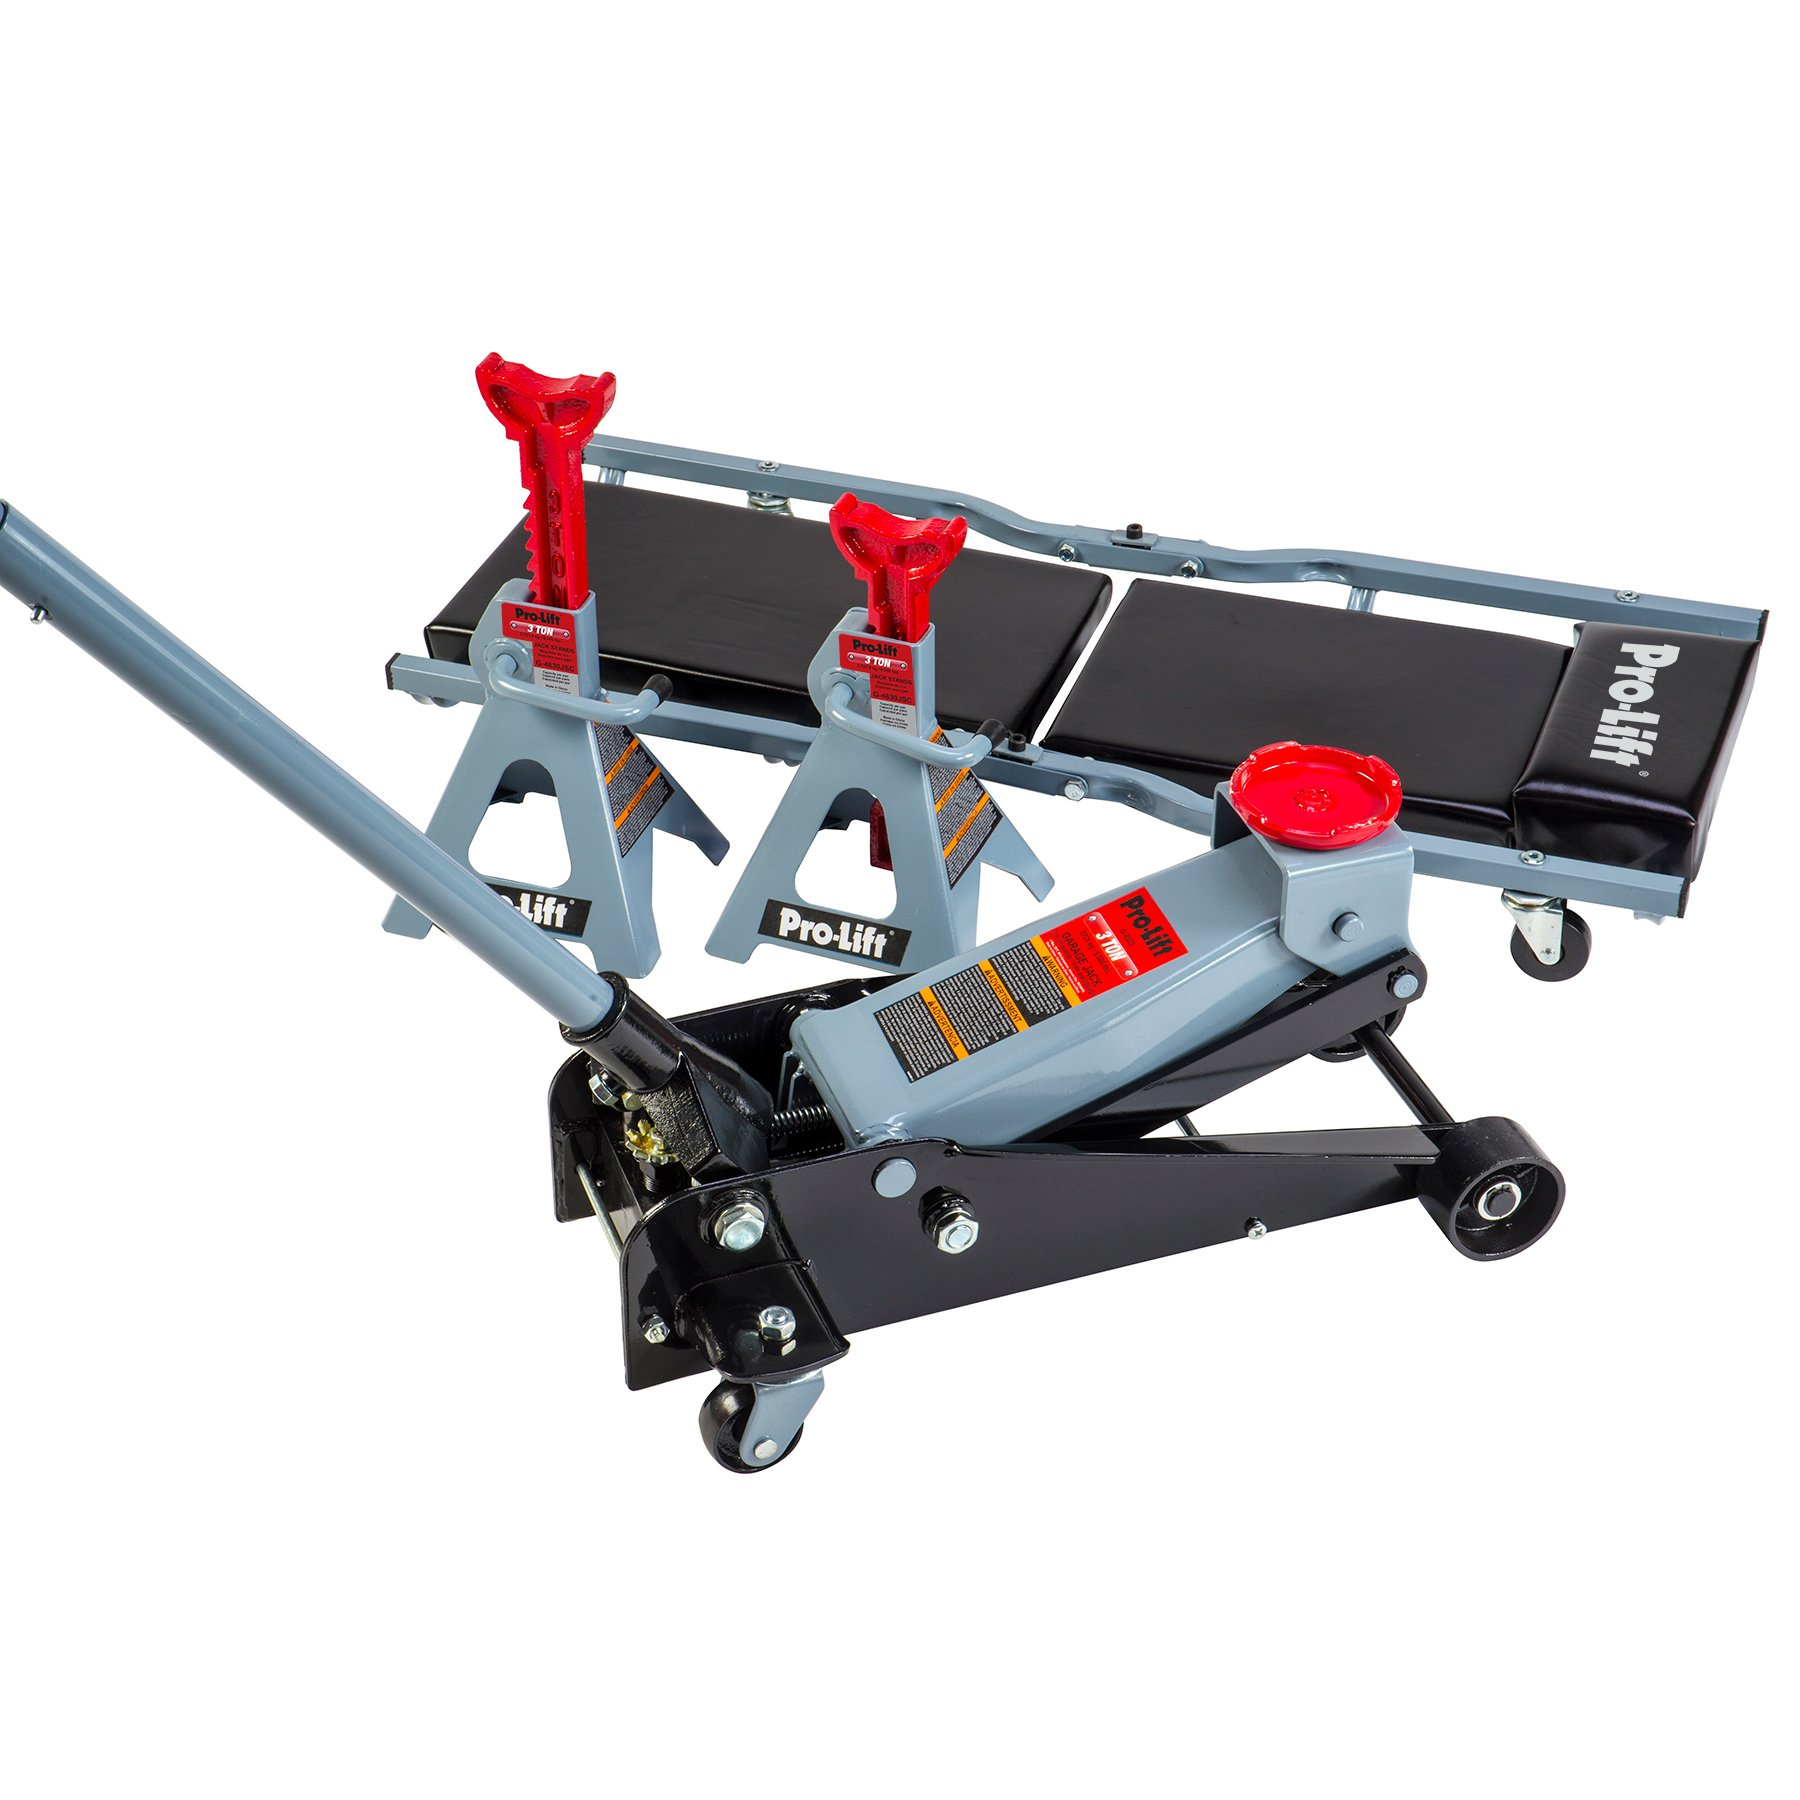 Pro Lift G-4630JSC 3 Ton Heavy Duty Floor Jack / Jack Stands and Creeper Combo - Great for Service Garage Home Uses